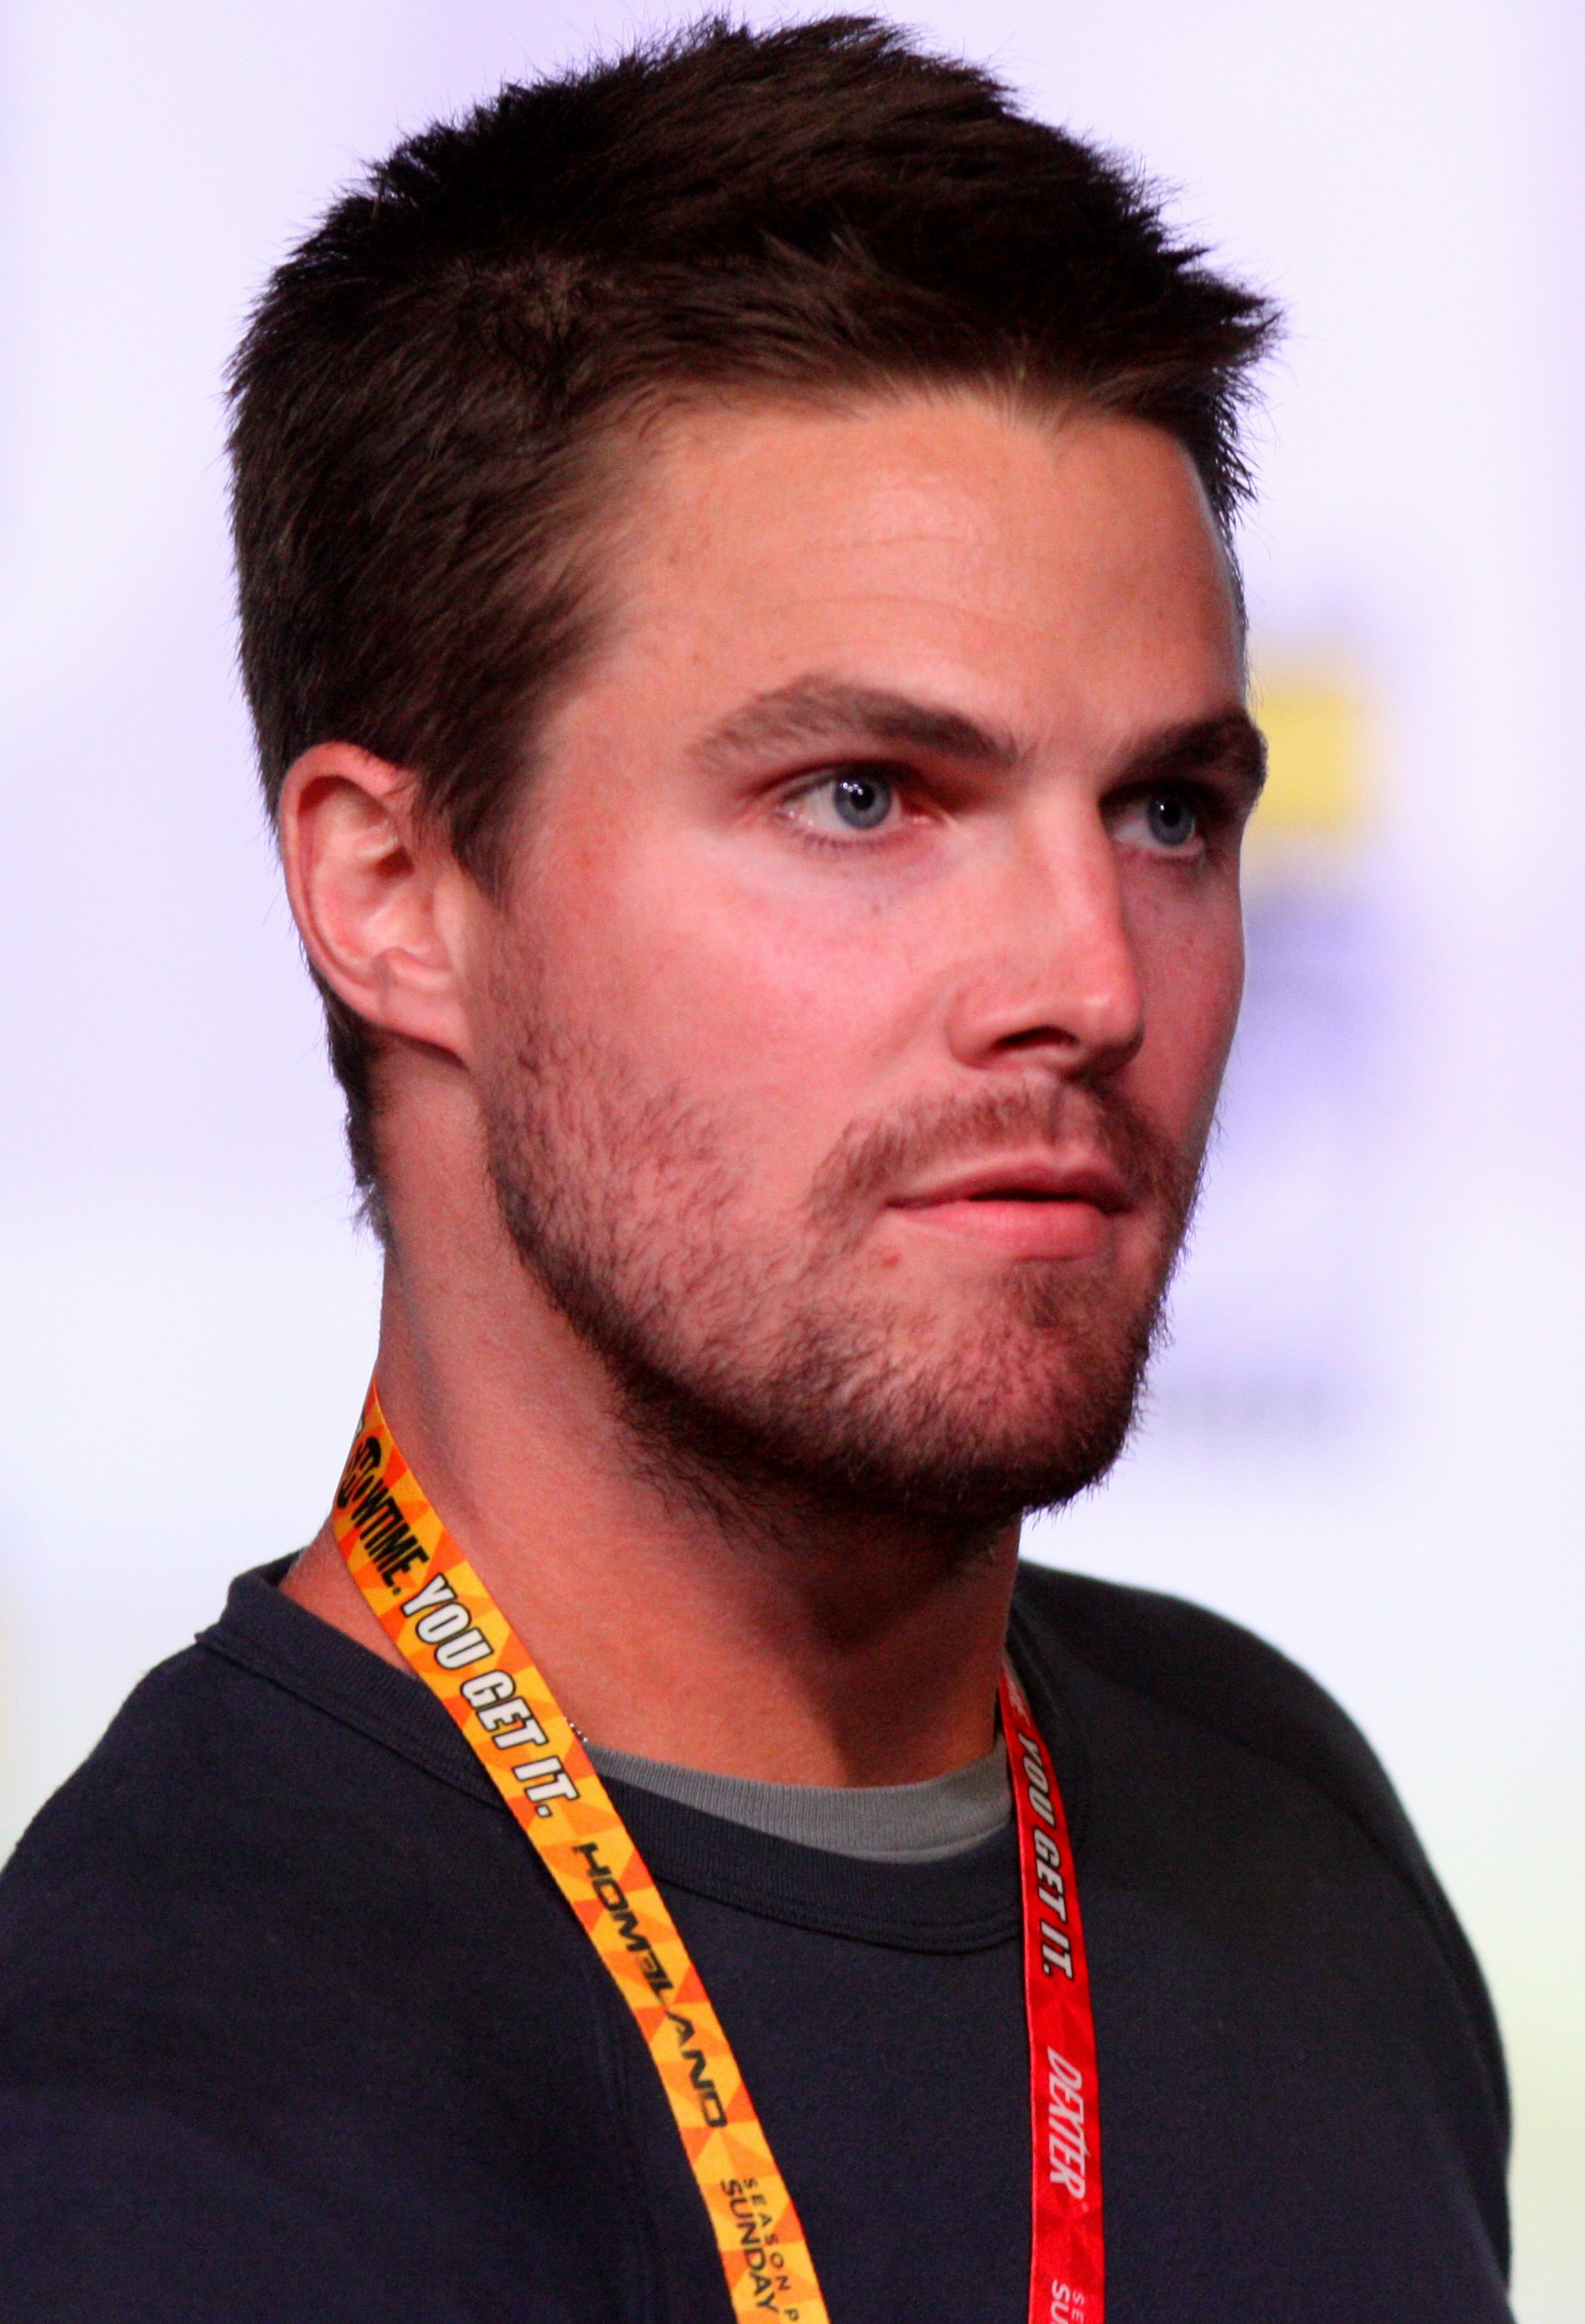 stephen amell wwestephen amell wwe, stephen amell gif, stephen amell instagram, stephen amell vk, stephen amell wife, stephen amell height, stephen amell arrow, stephen amell gif hunt, stephen amell png, stephen amell 2017, stephen amell wiki, stephen amell workout, stephen amell and emily bett rickards, stephen amell википедия, stephen amell brother, stephen amell training, stephen amell hairstyle, stephen amell wikipedia, stephen amell вк, stephen amell beard